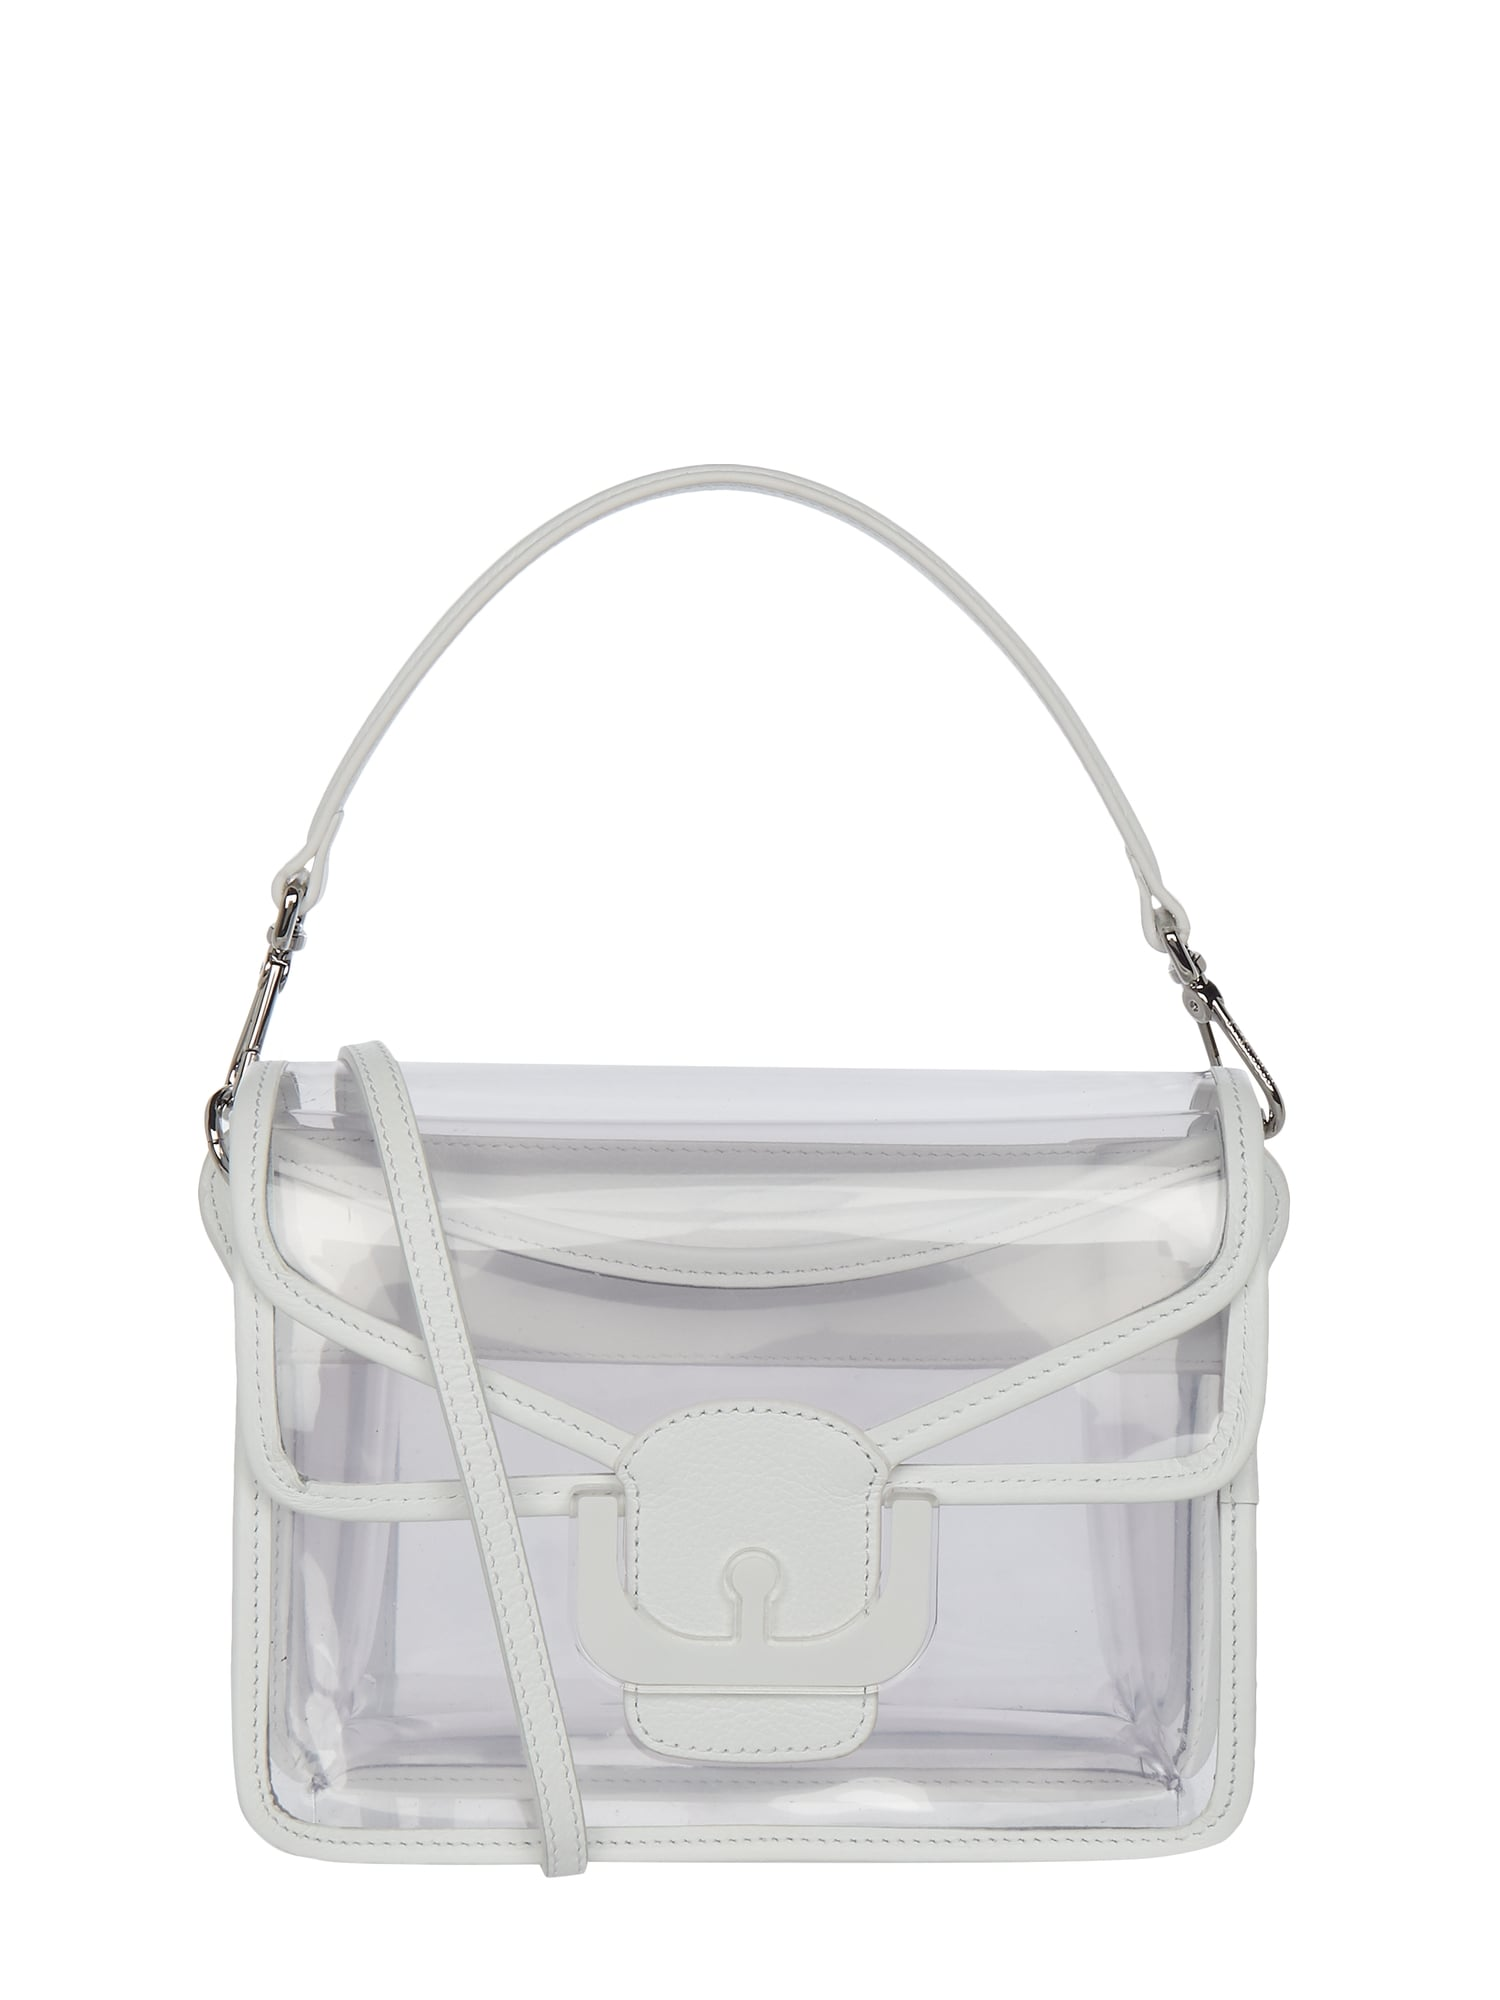 biggest discount united states lower price with COCCINELLE Crossbody Bag aus Leder in transparenter Optik in Weiß online  kaufen (9941012) ▷ P&C Online Shop